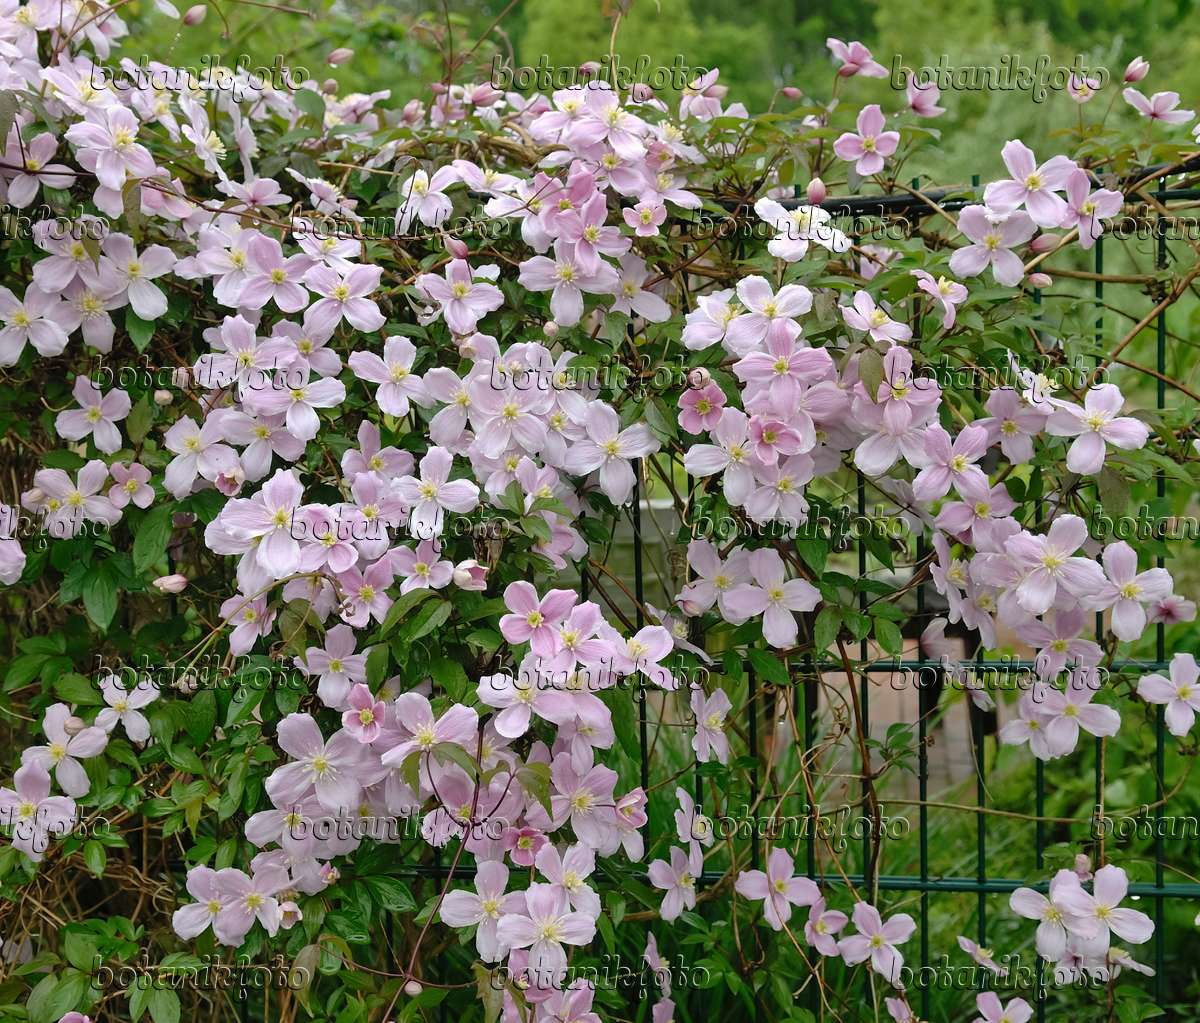 image anemone clematis clematis montana 39 tetrarose 39 454013 images and videos of plants and. Black Bedroom Furniture Sets. Home Design Ideas